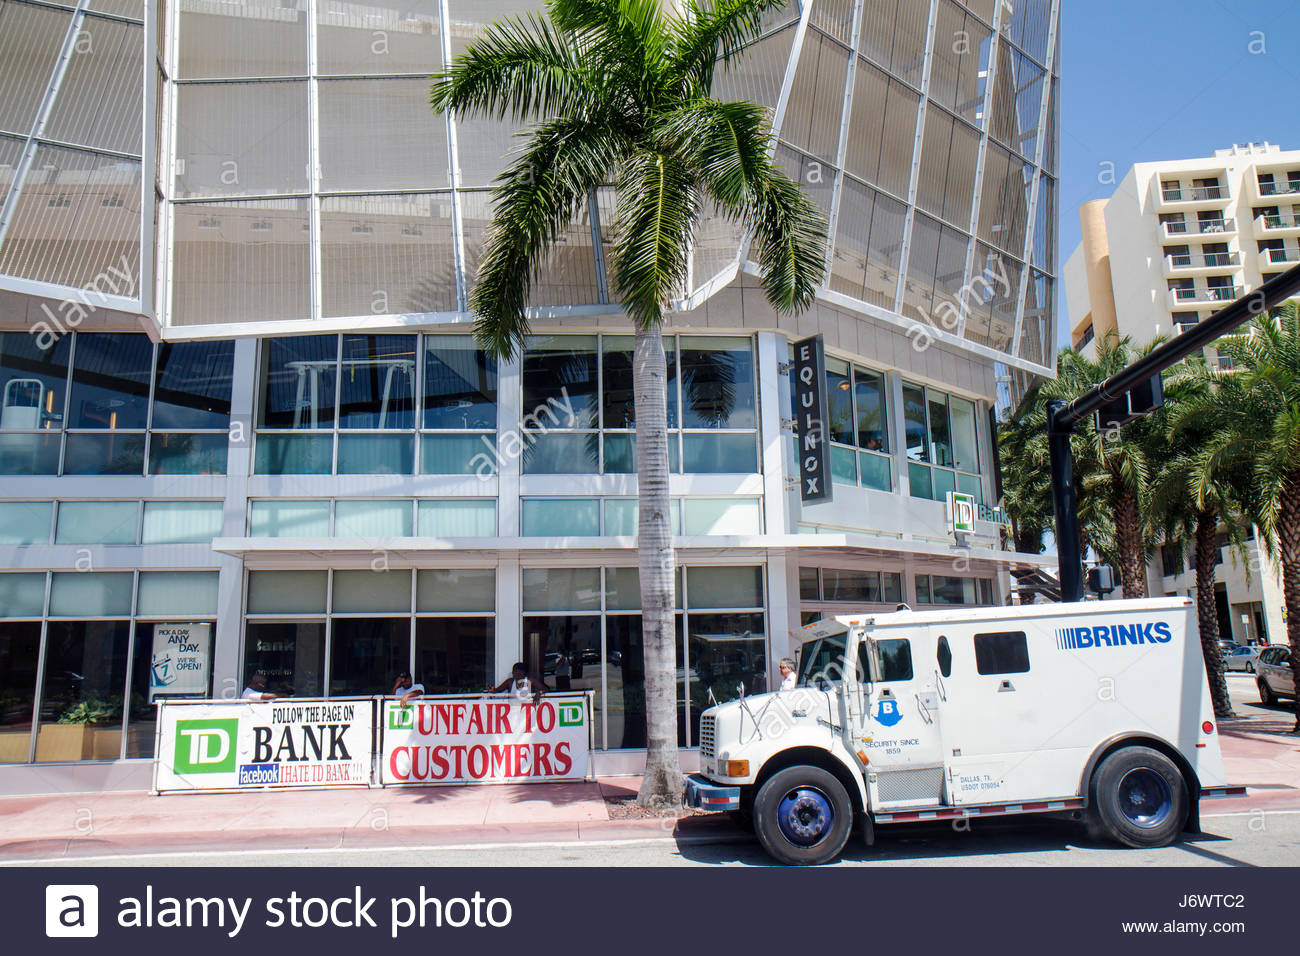 Miami Beach Florida TD Bank signs picketing Brinks armored truck - Stock Image